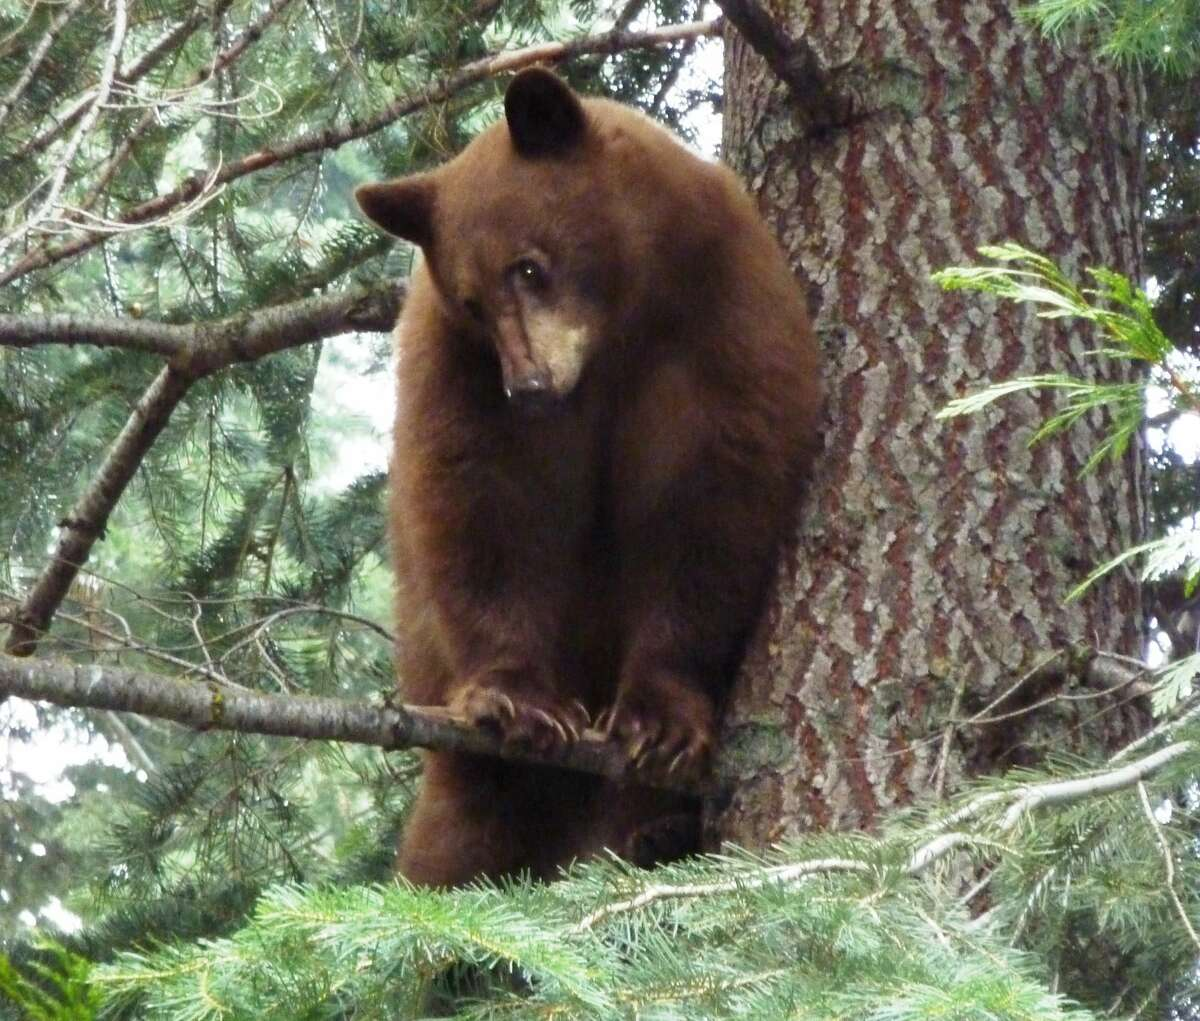 Tensions between bears and humans in Tahoe this summer are running high.